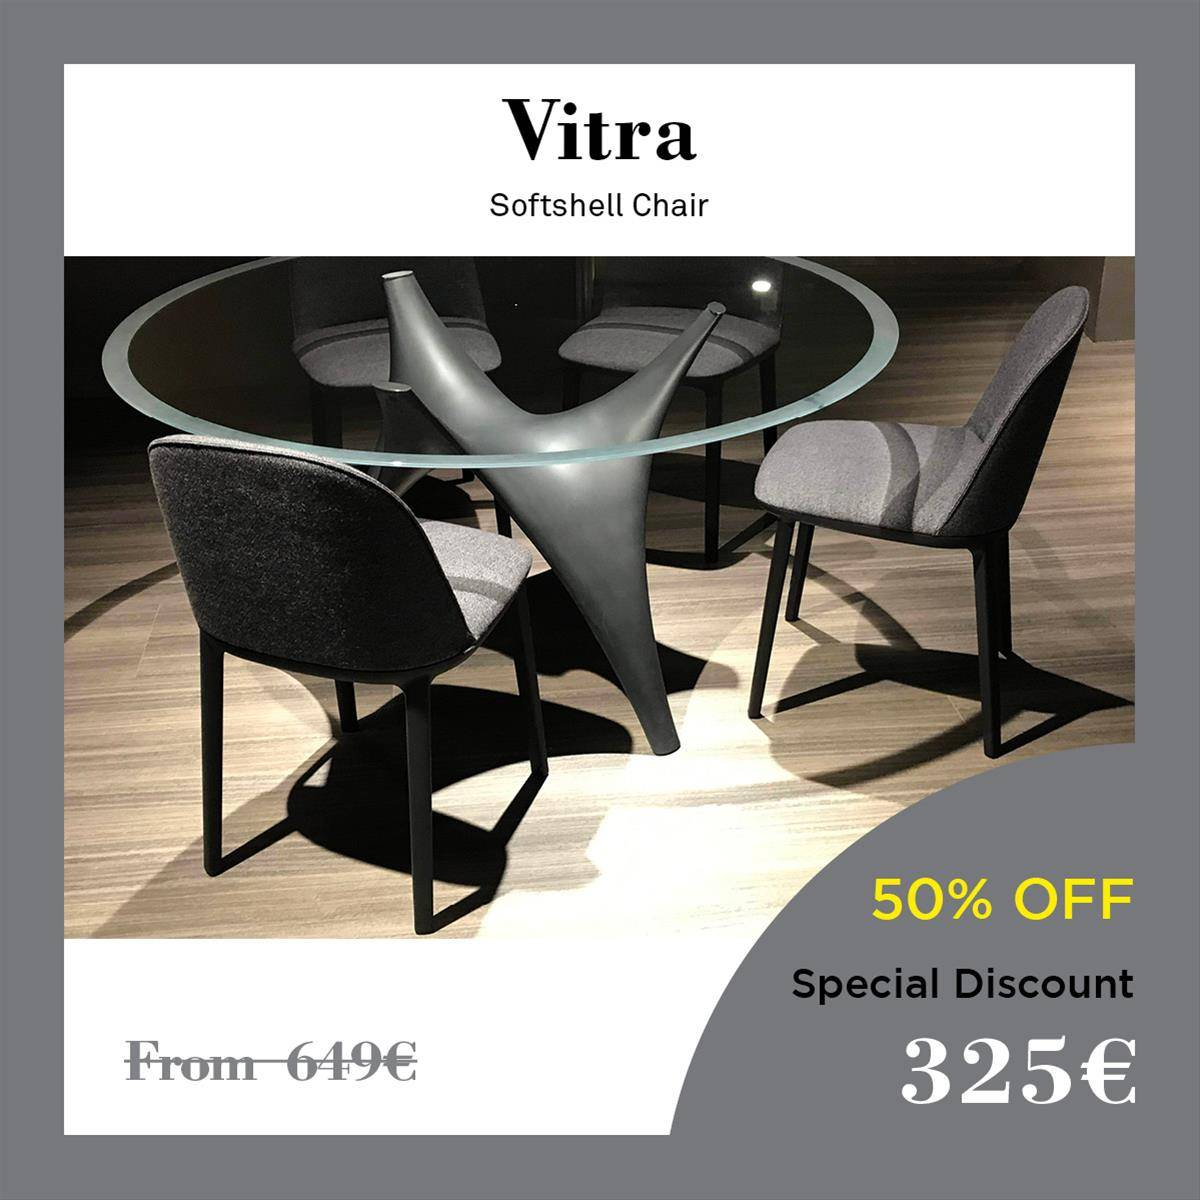 Wondrous Black Friday Furniture Deals 2019 Have Arrived Sag80 Gmtry Best Dining Table And Chair Ideas Images Gmtryco